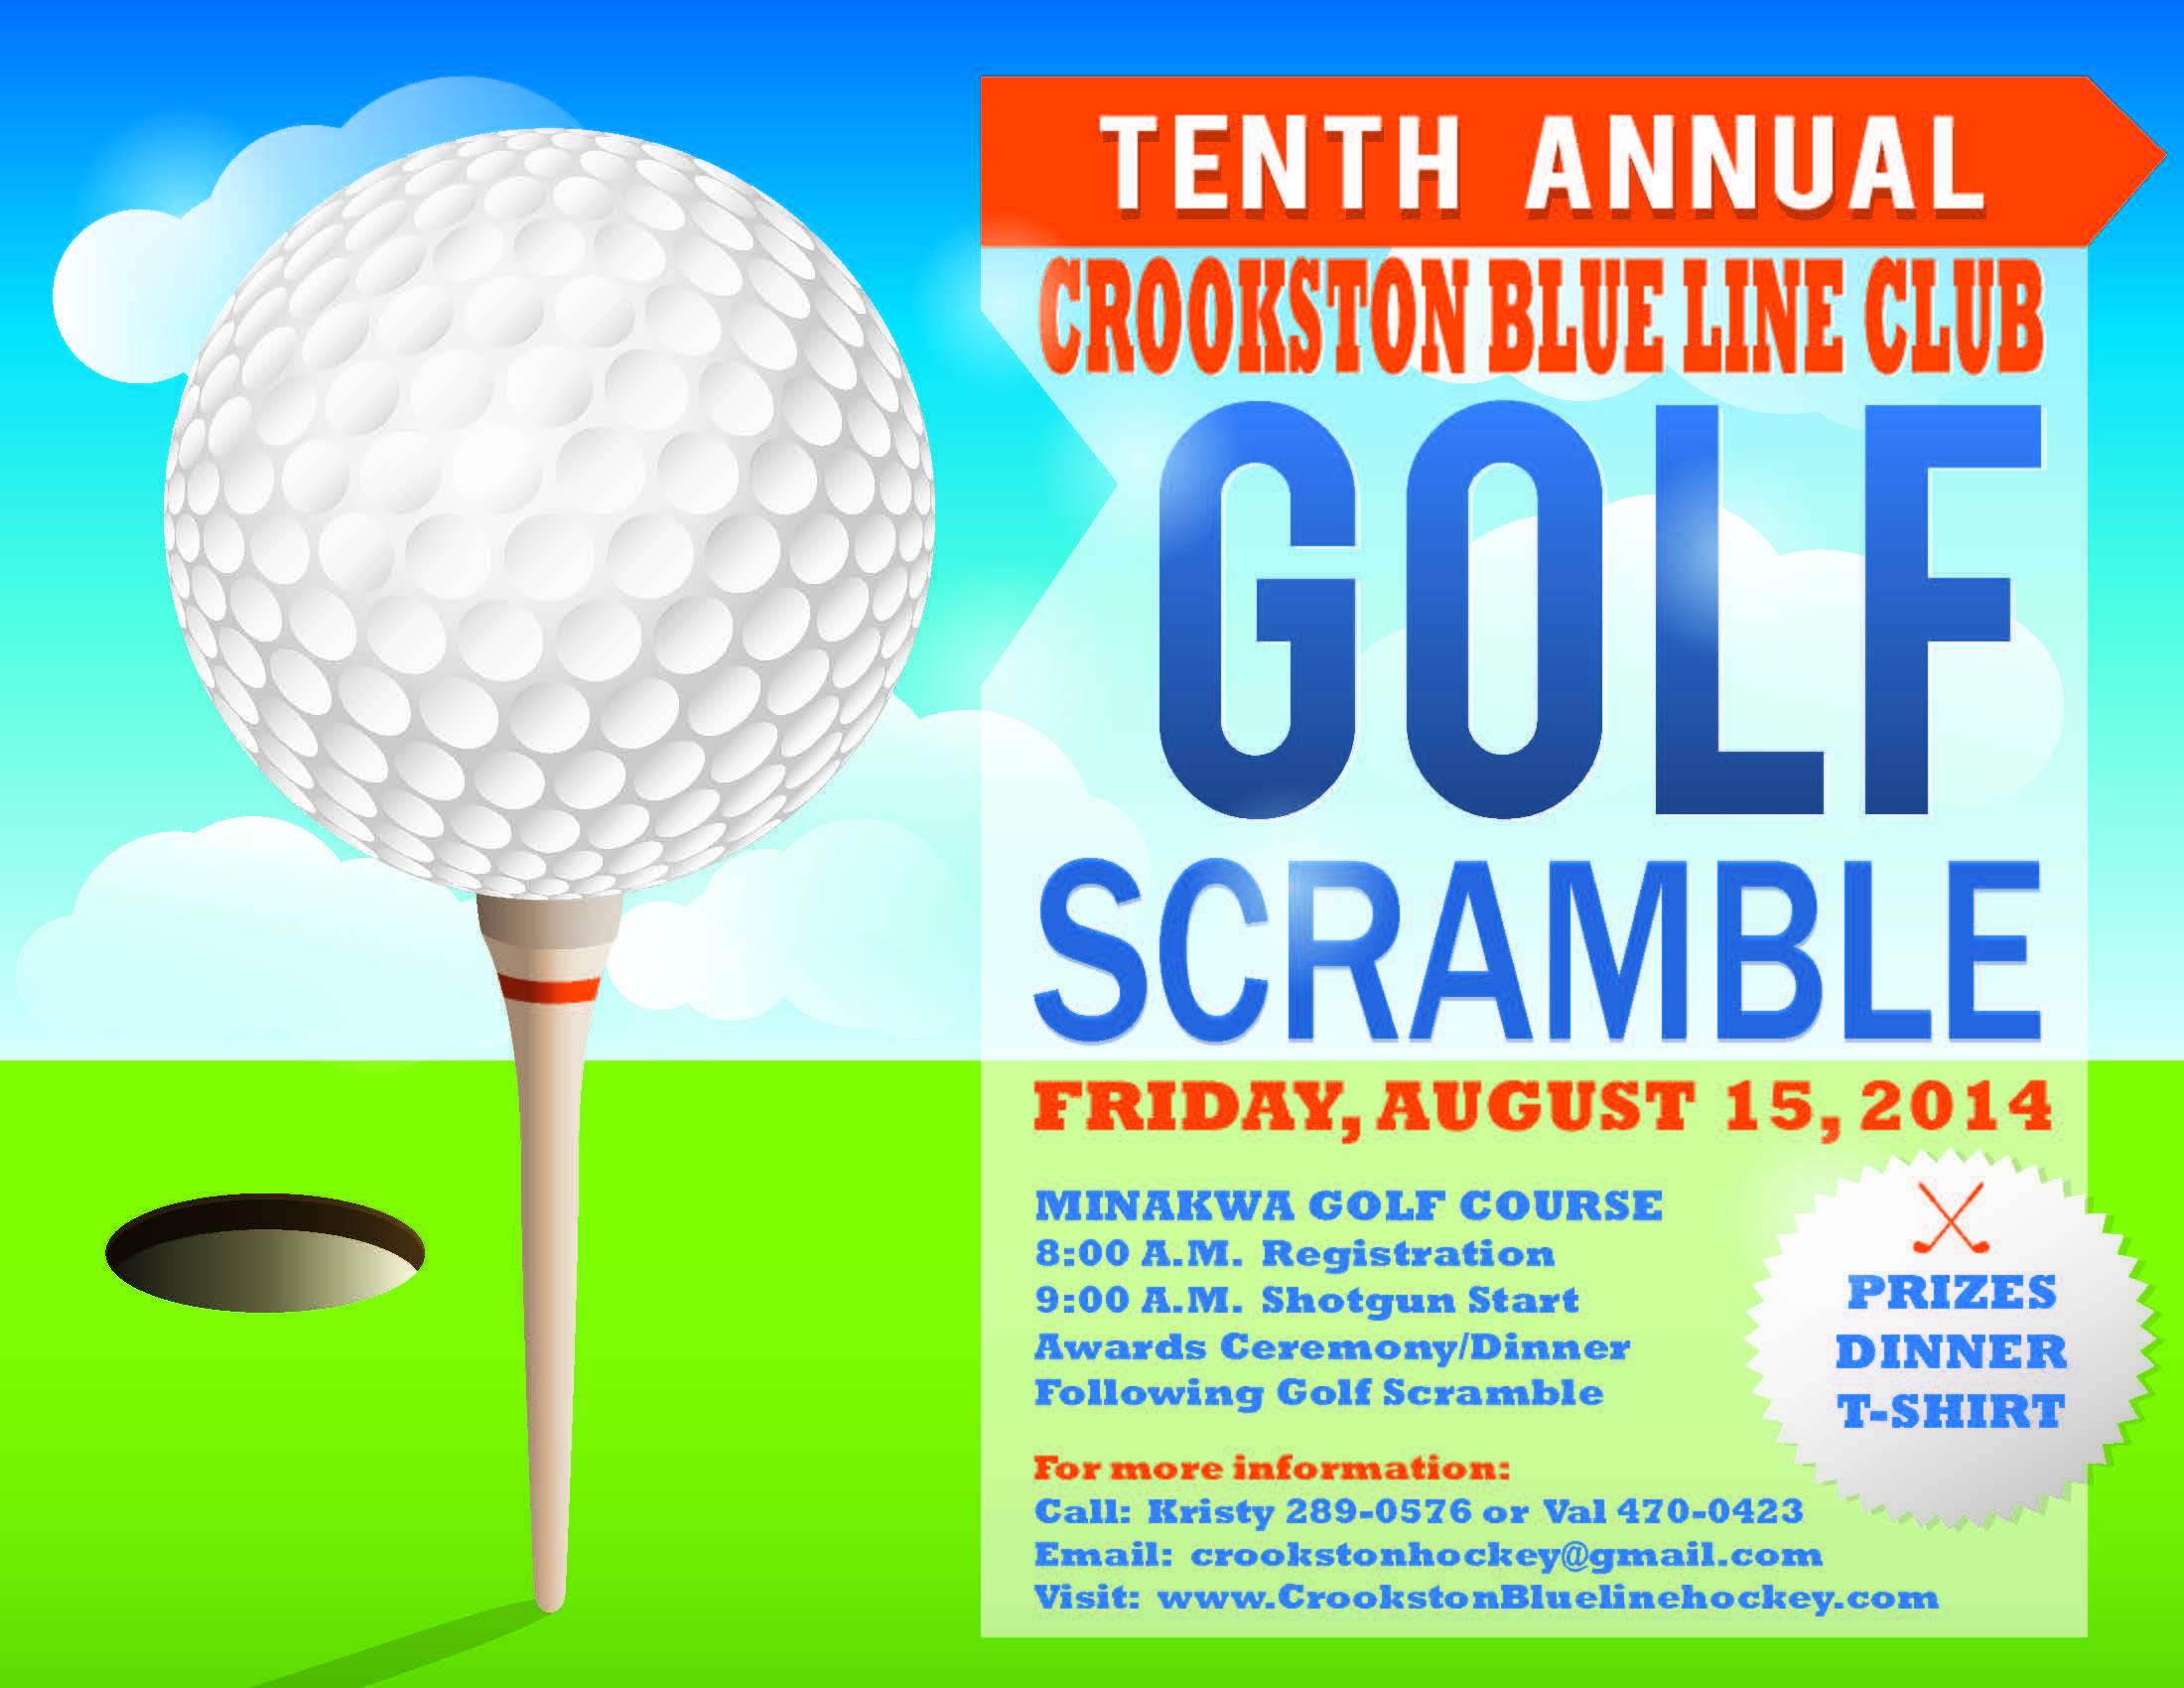 2014 GOLF SCRAMBLE FLYER